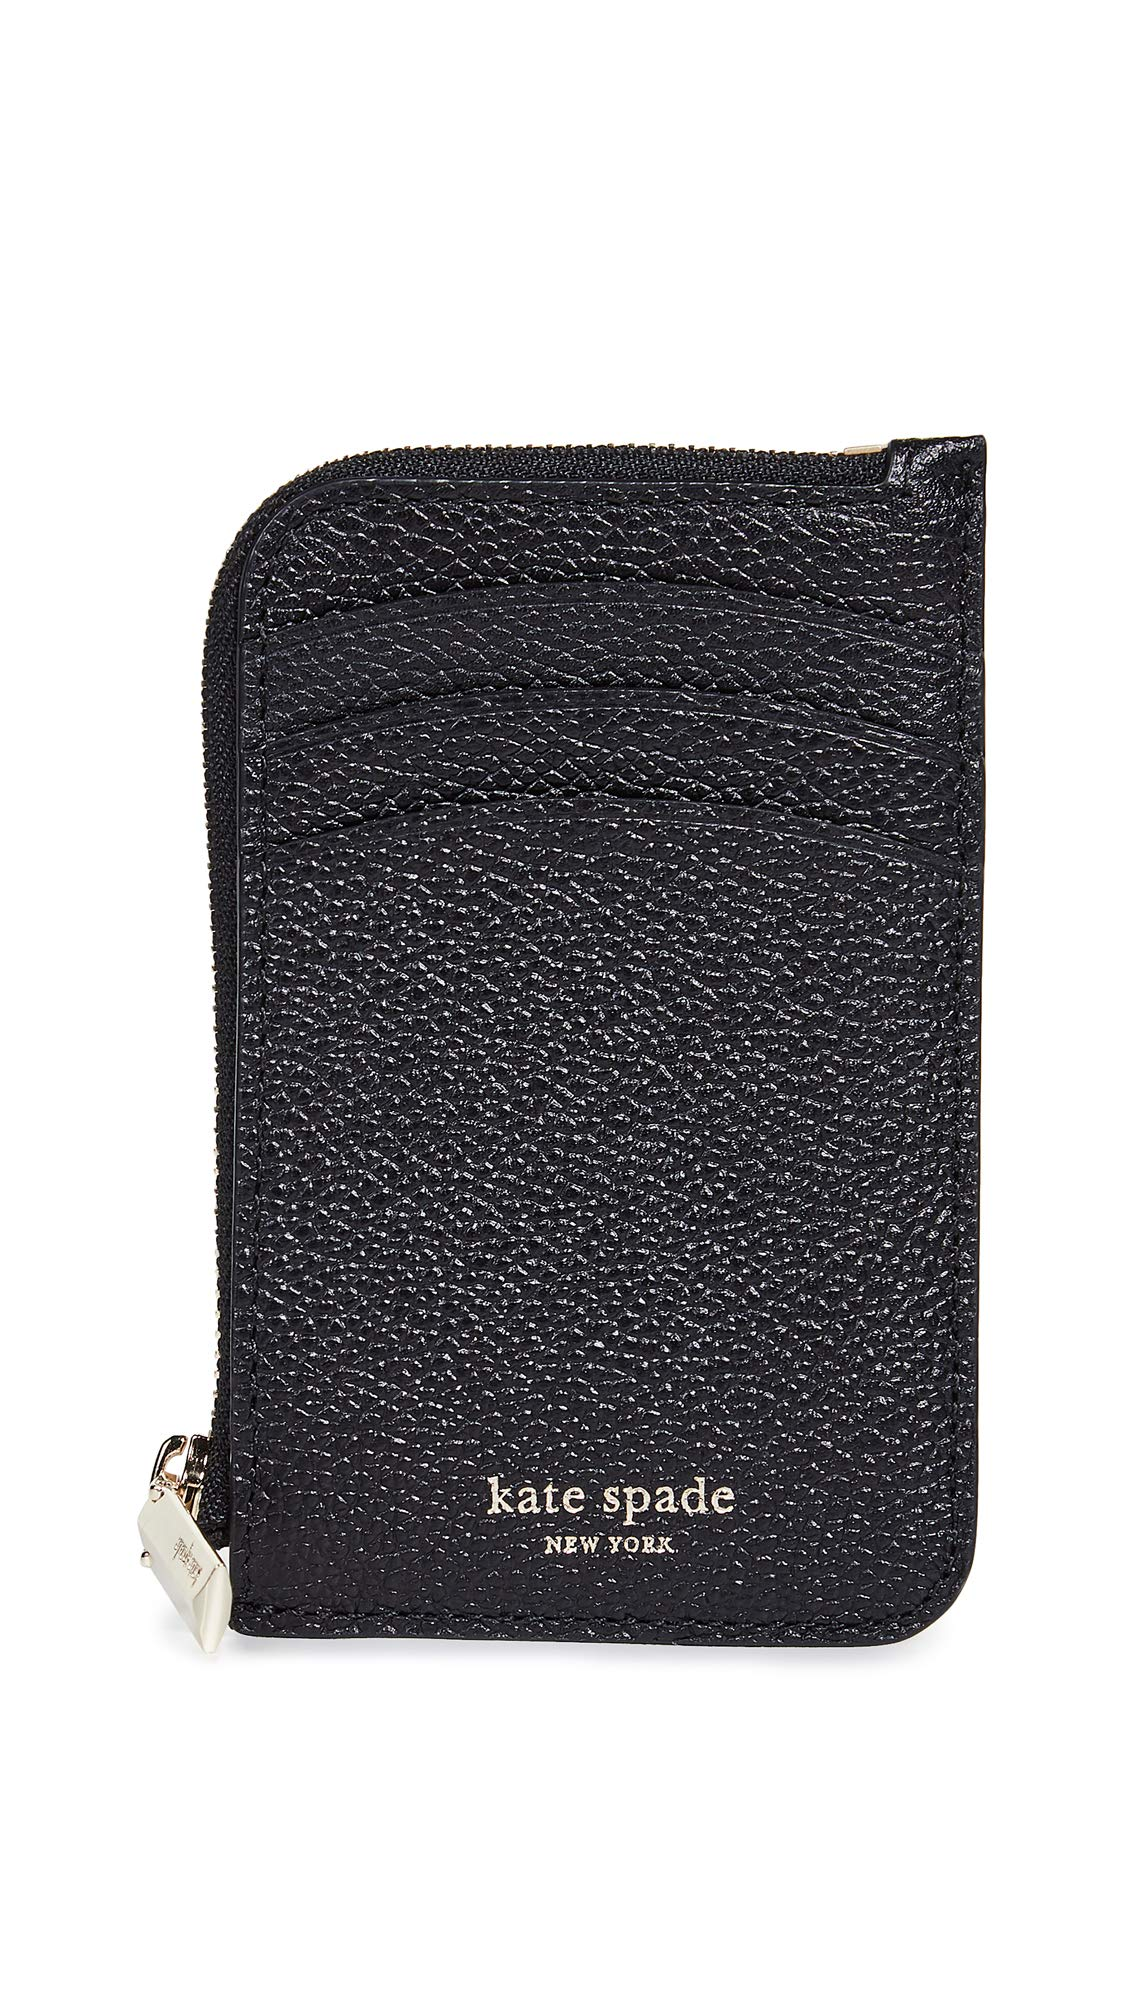 Kate Spade New York Women's Margaux Zip Card Holder, Black, One Size by Kate Spade New York